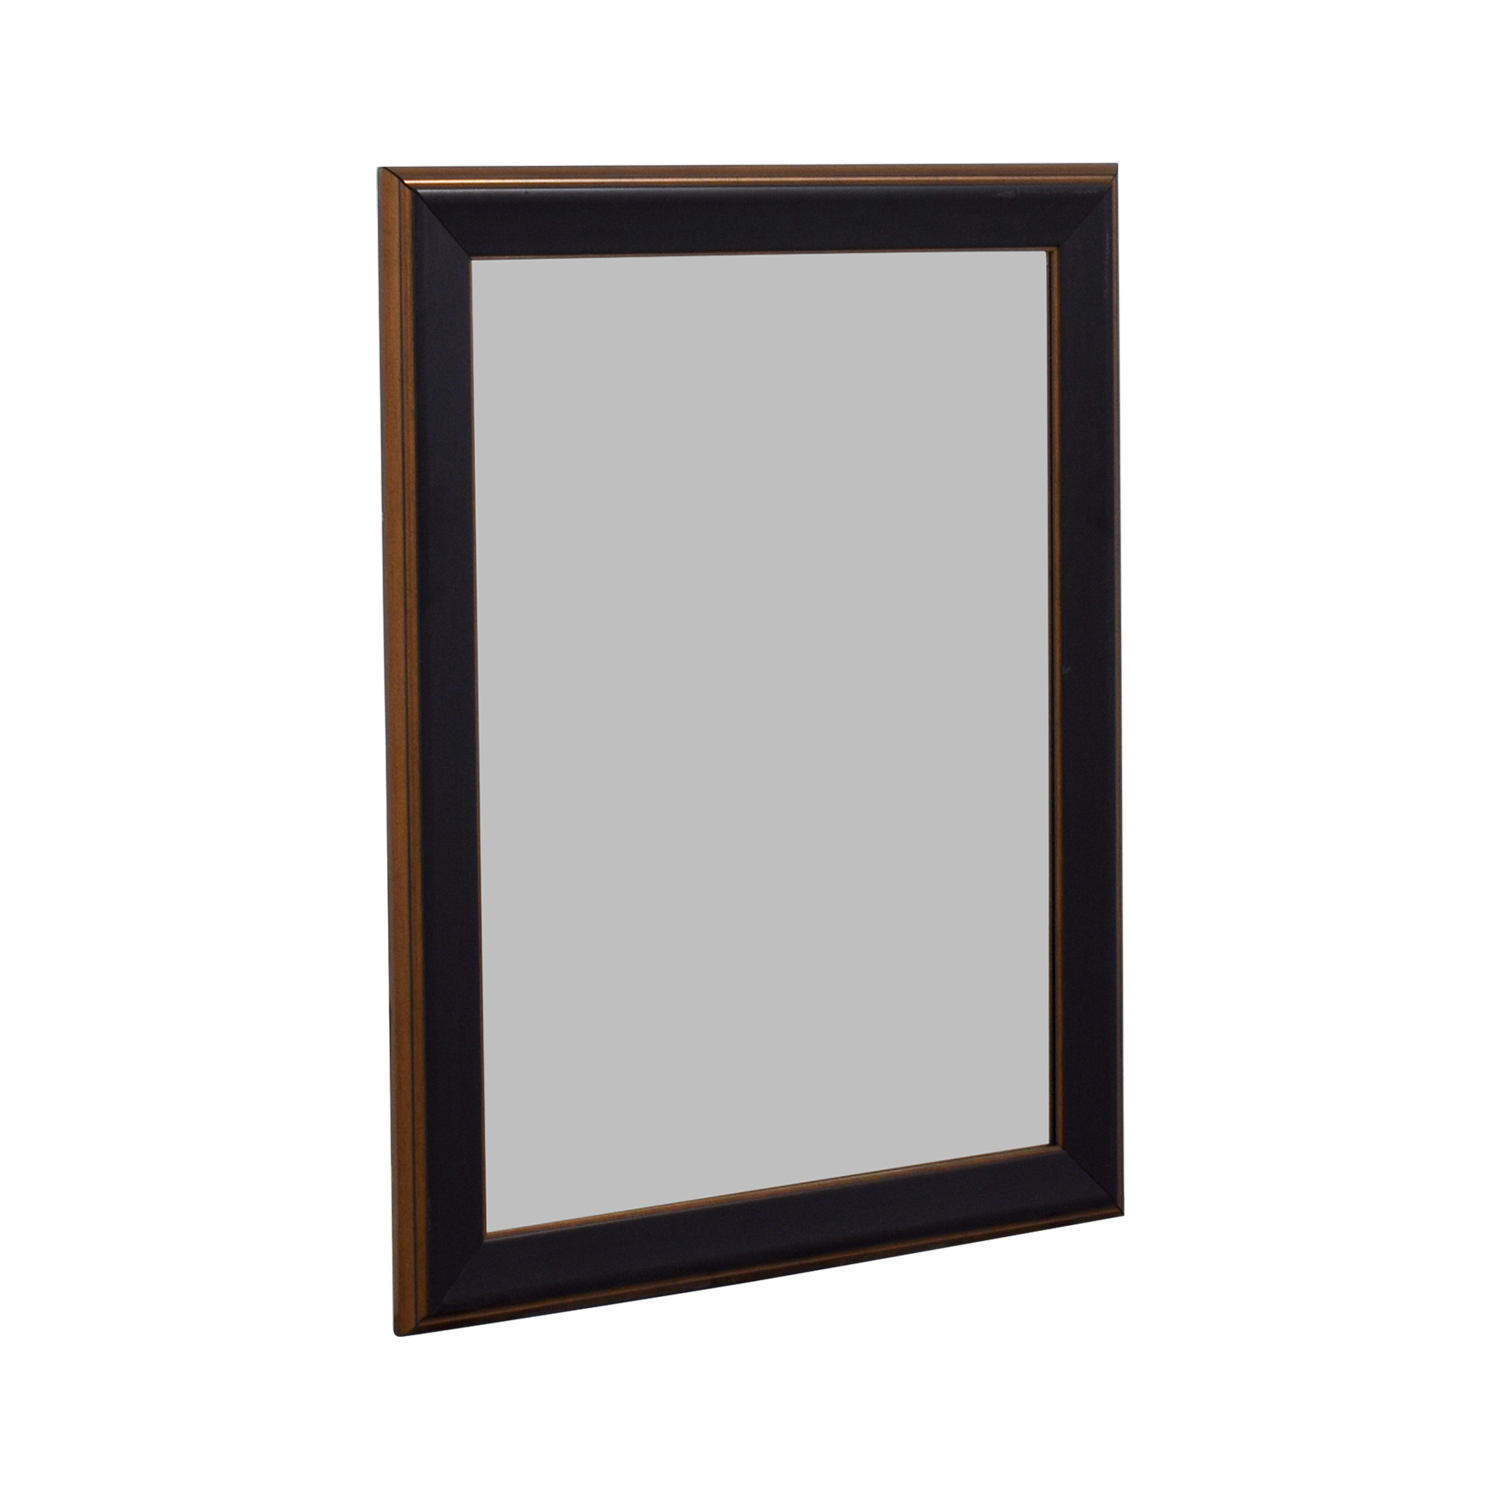 Wood Framed Mirror used